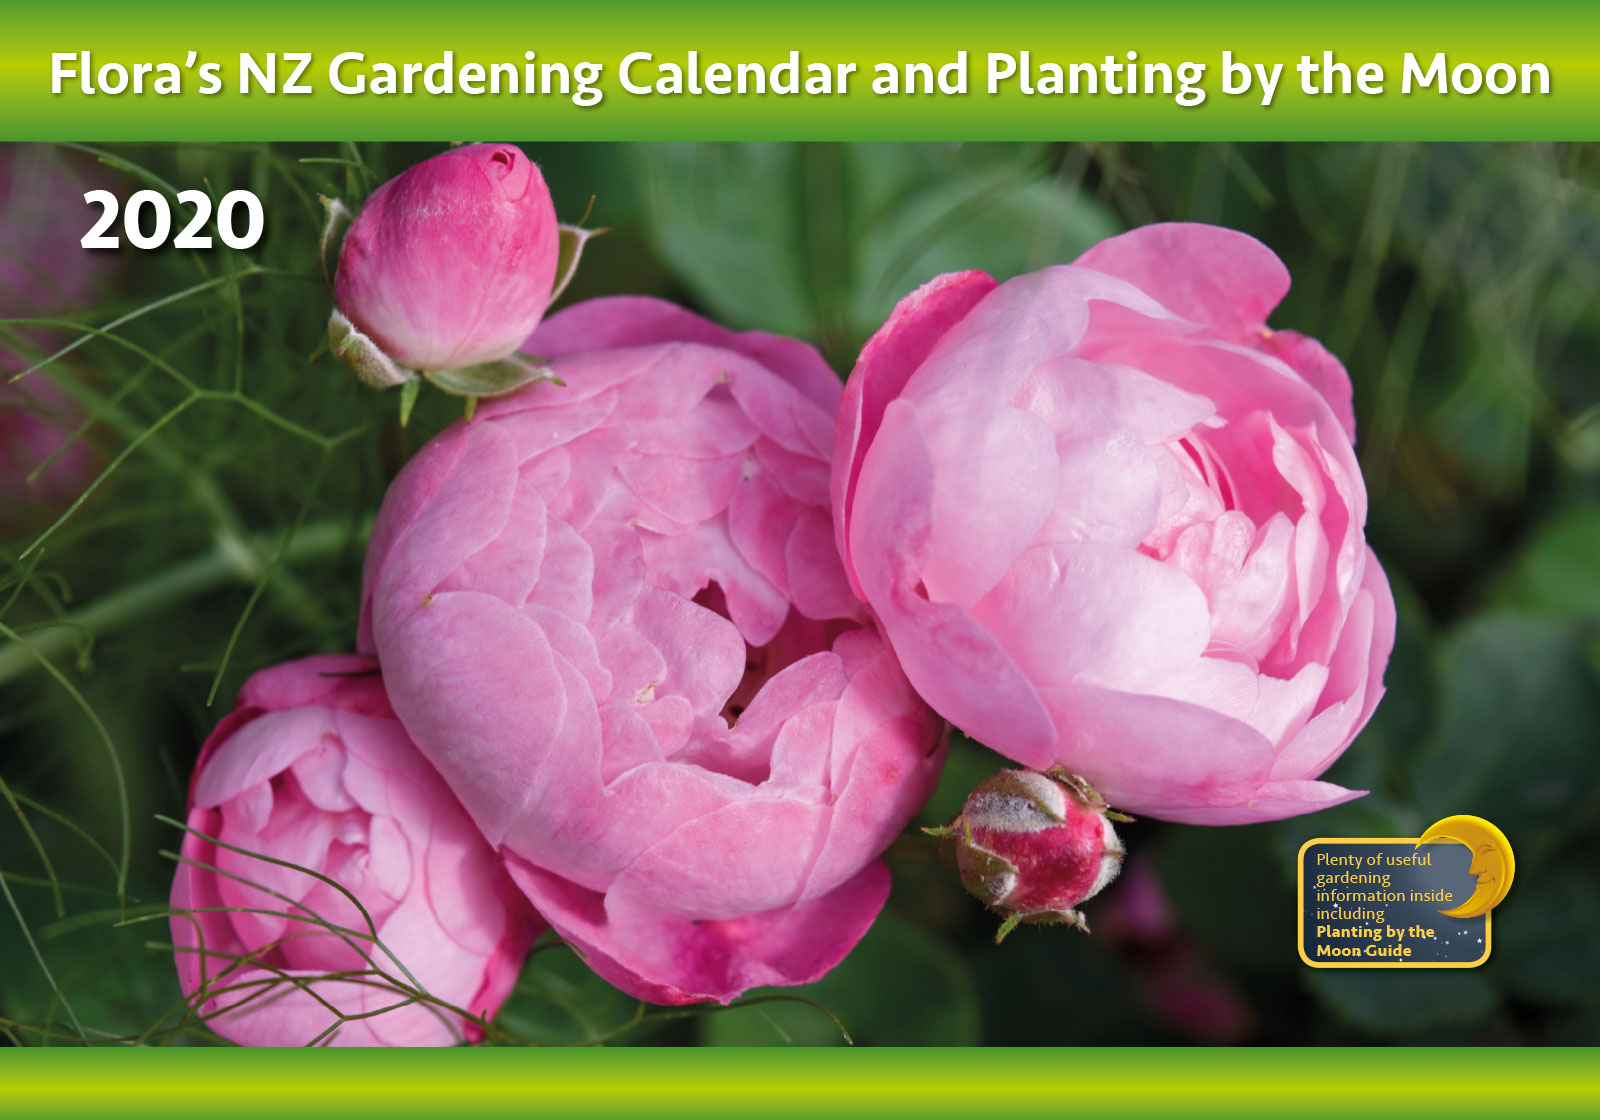 Flora's Gardening Calendar and Planting by the Moon 2020